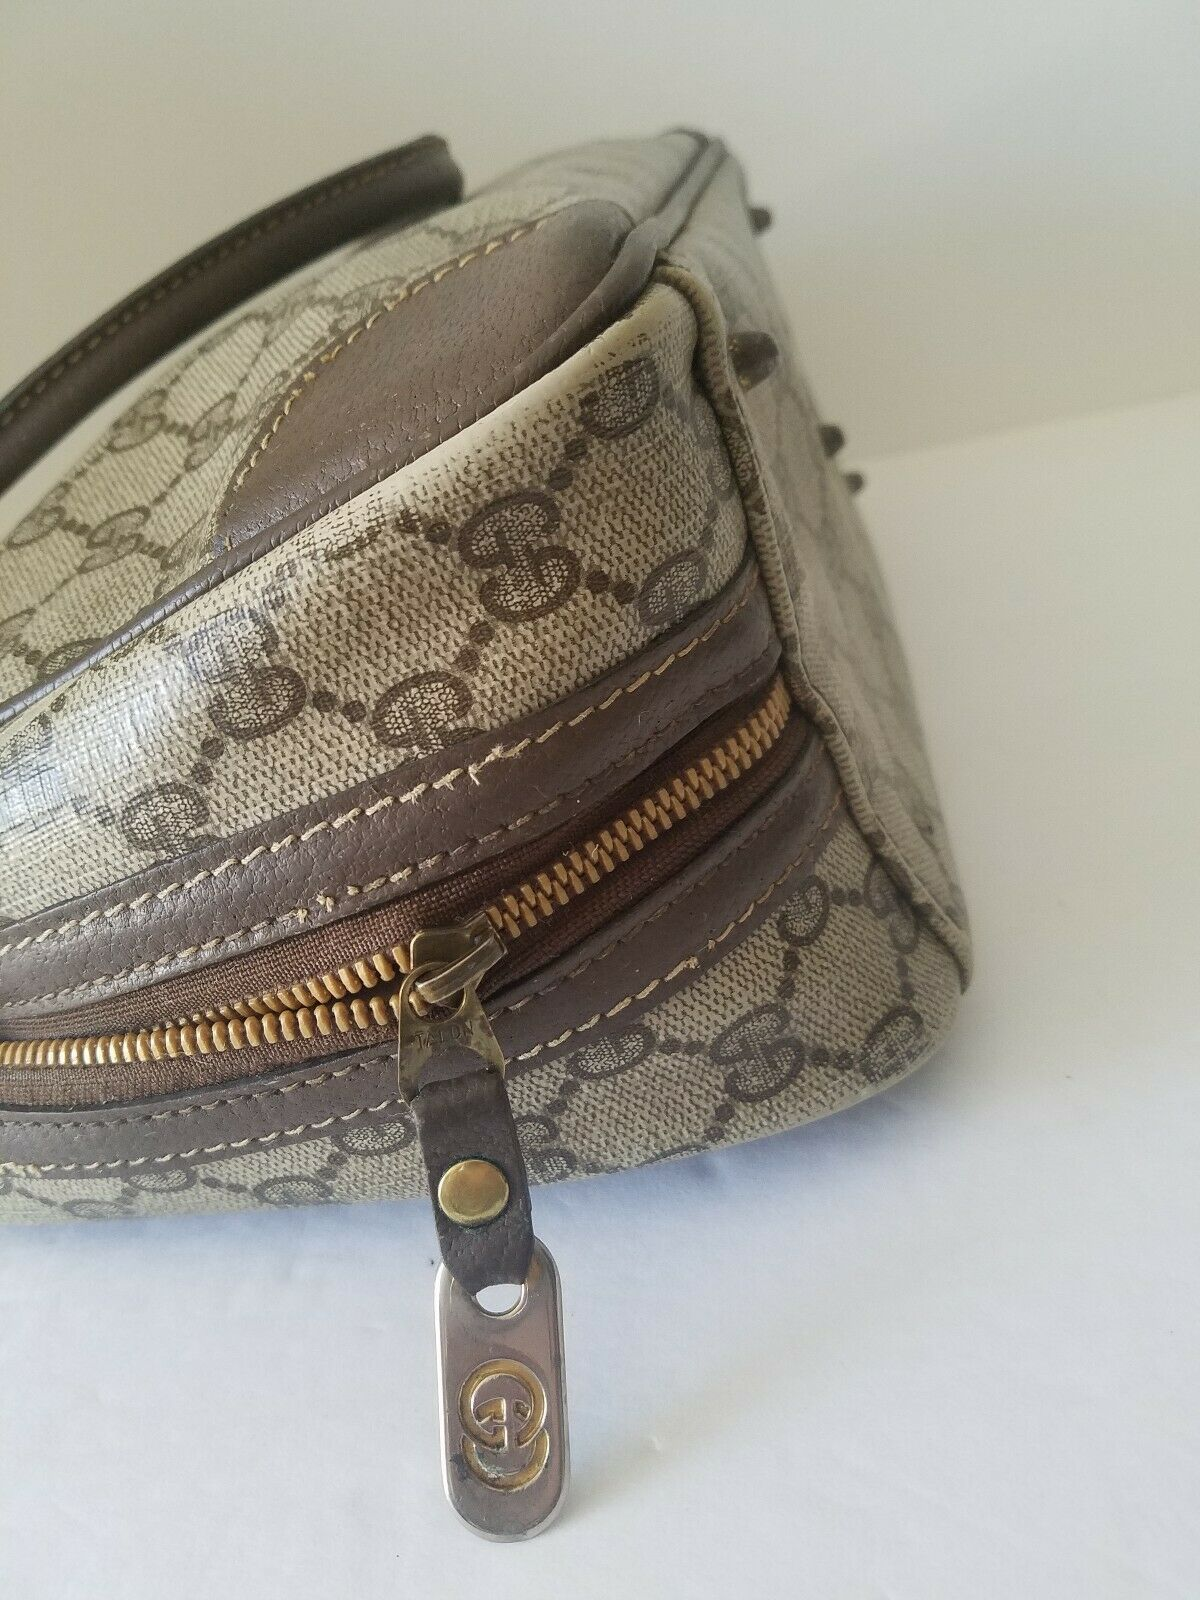 AUTHENTIC GUCCI GG MONOGRAM LEATHER/PVC DOCTOR BA… - image 11